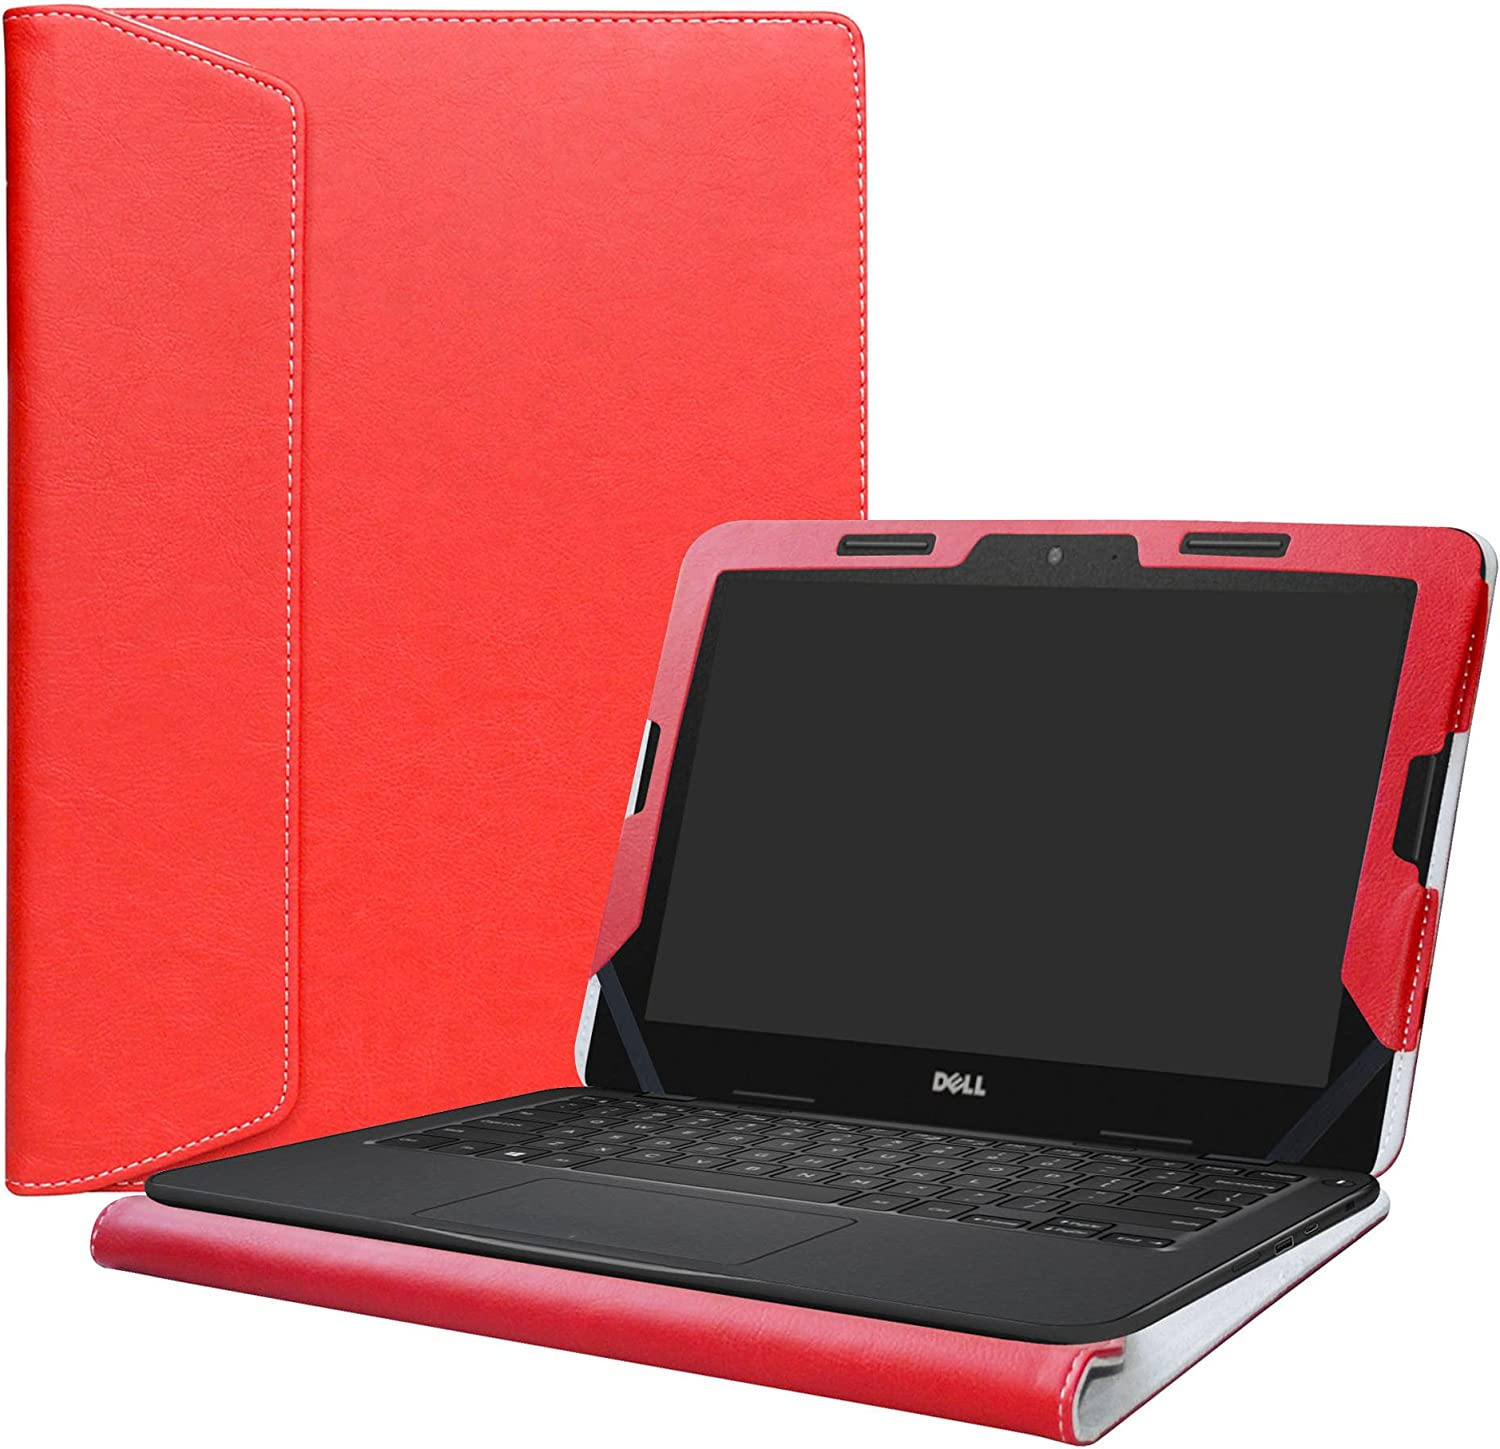 """Alapmk Protective Case Cover for 11.6"""" Dell Chromebook 11 5190/Chromebook 5190 3100 2-in-1 Education/Latitude 11 2-in-1 3190 3189 Education/Inspiron Chromebook 11 2-in-1 3181 Laptop,Red"""